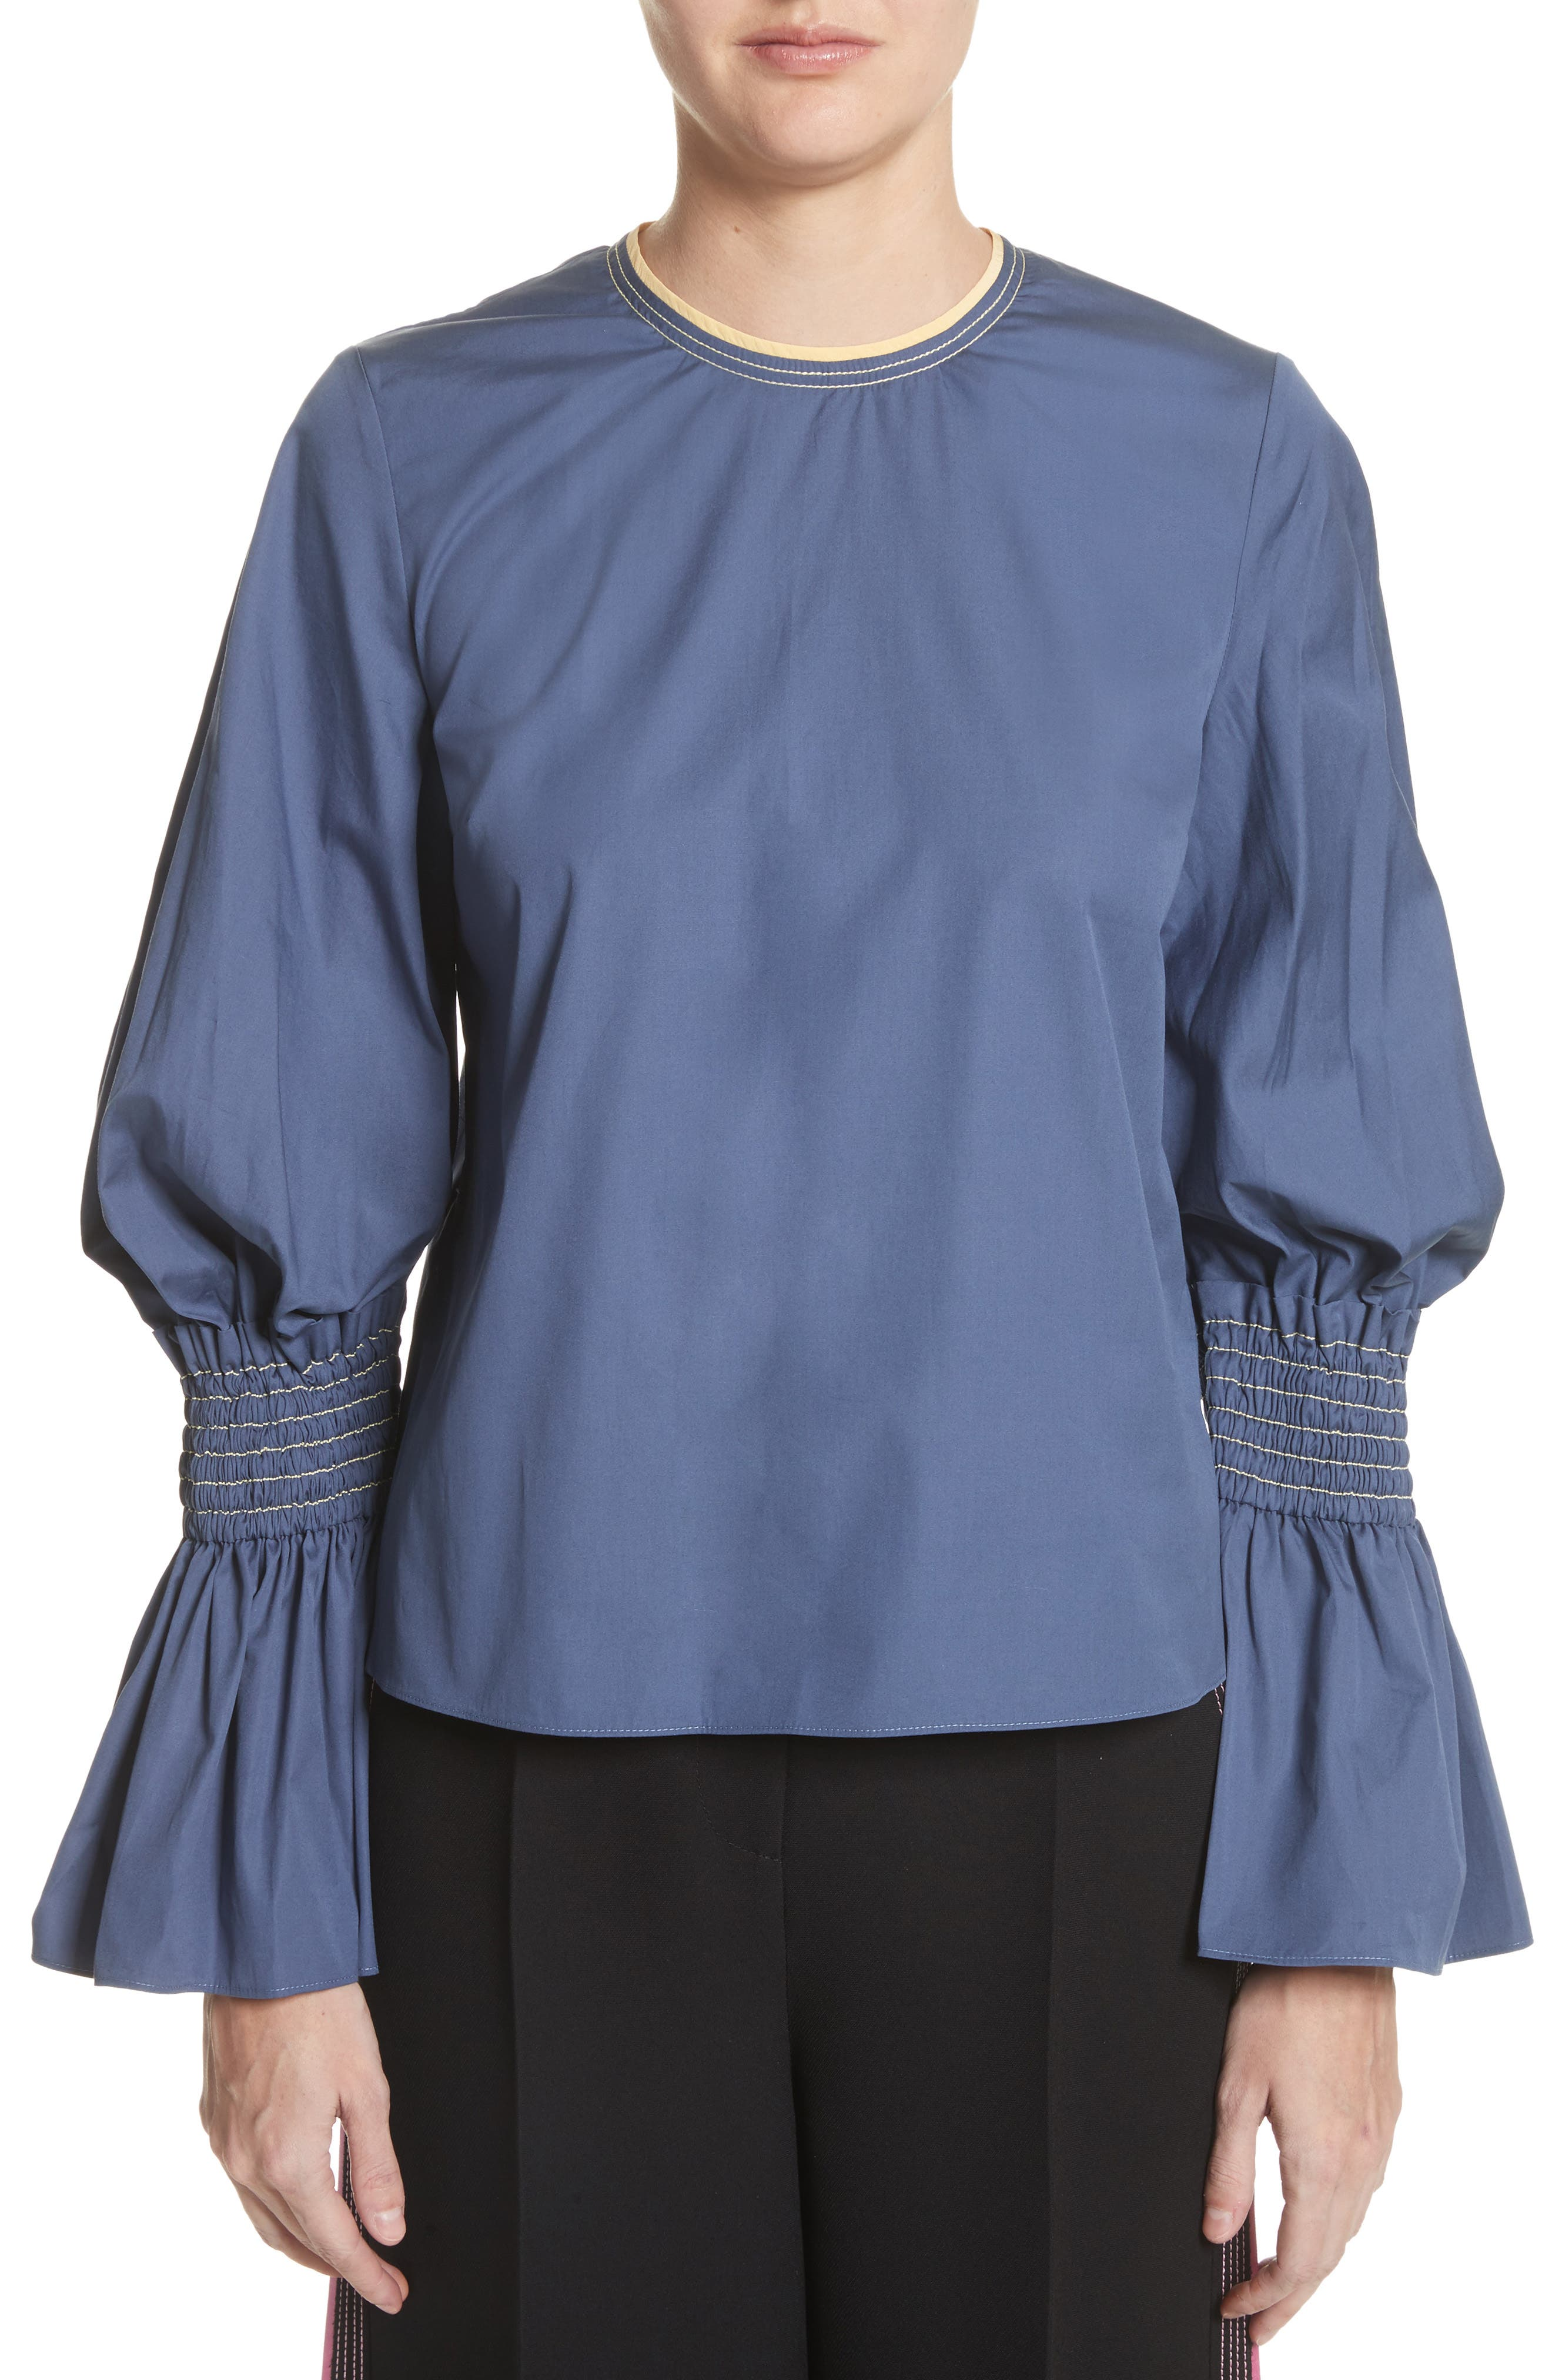 Kalila Top,                         Main,                         color, French Blue / Sorbet